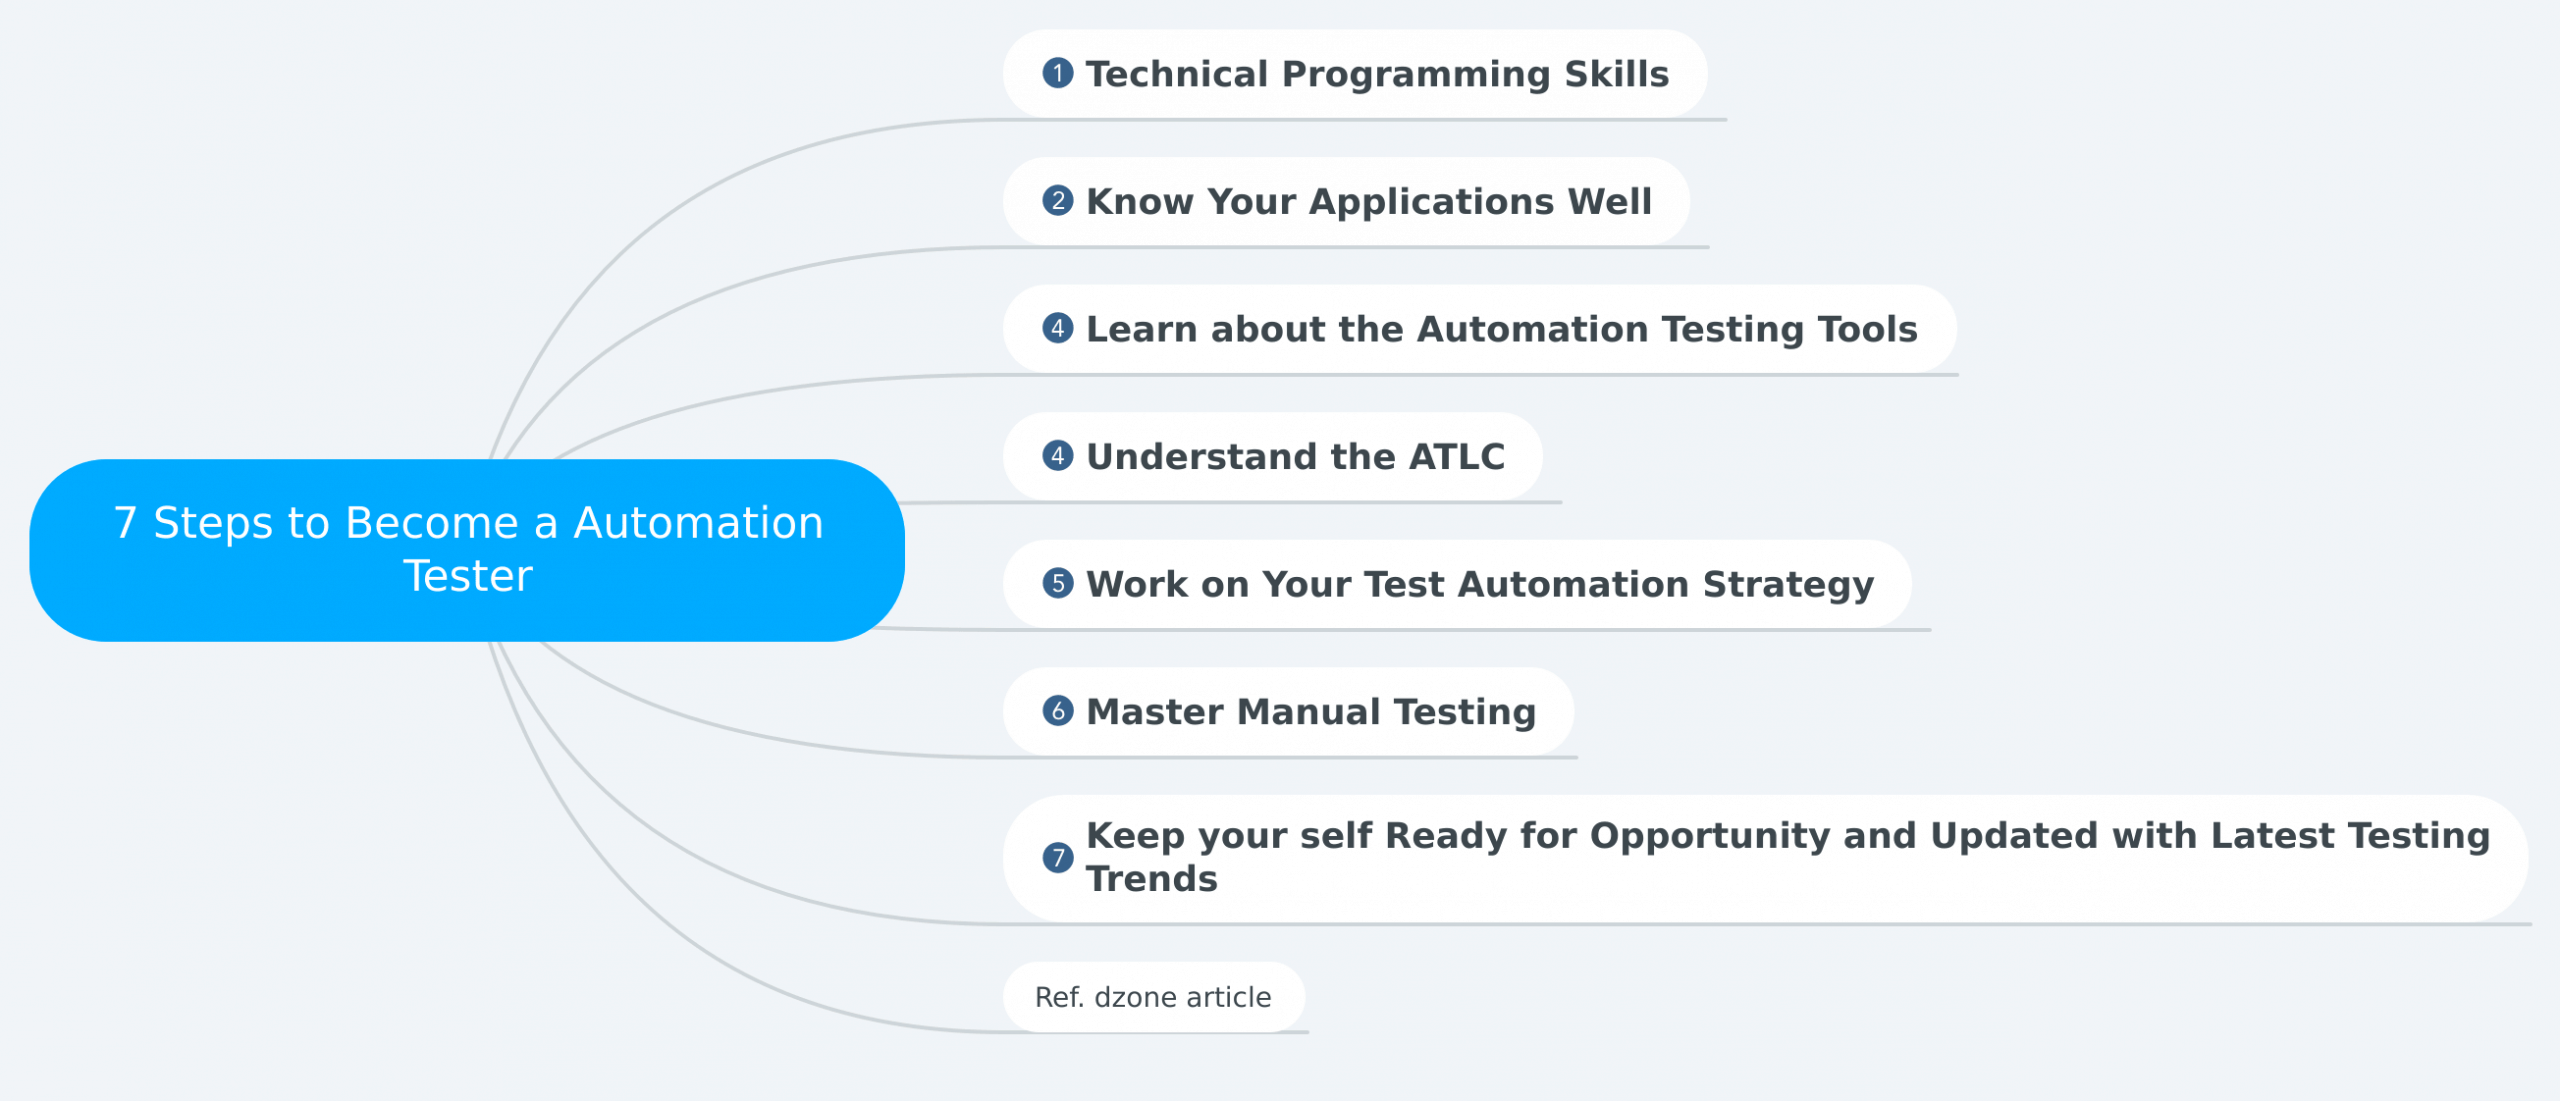 7 Steps to Become a Automation Tester